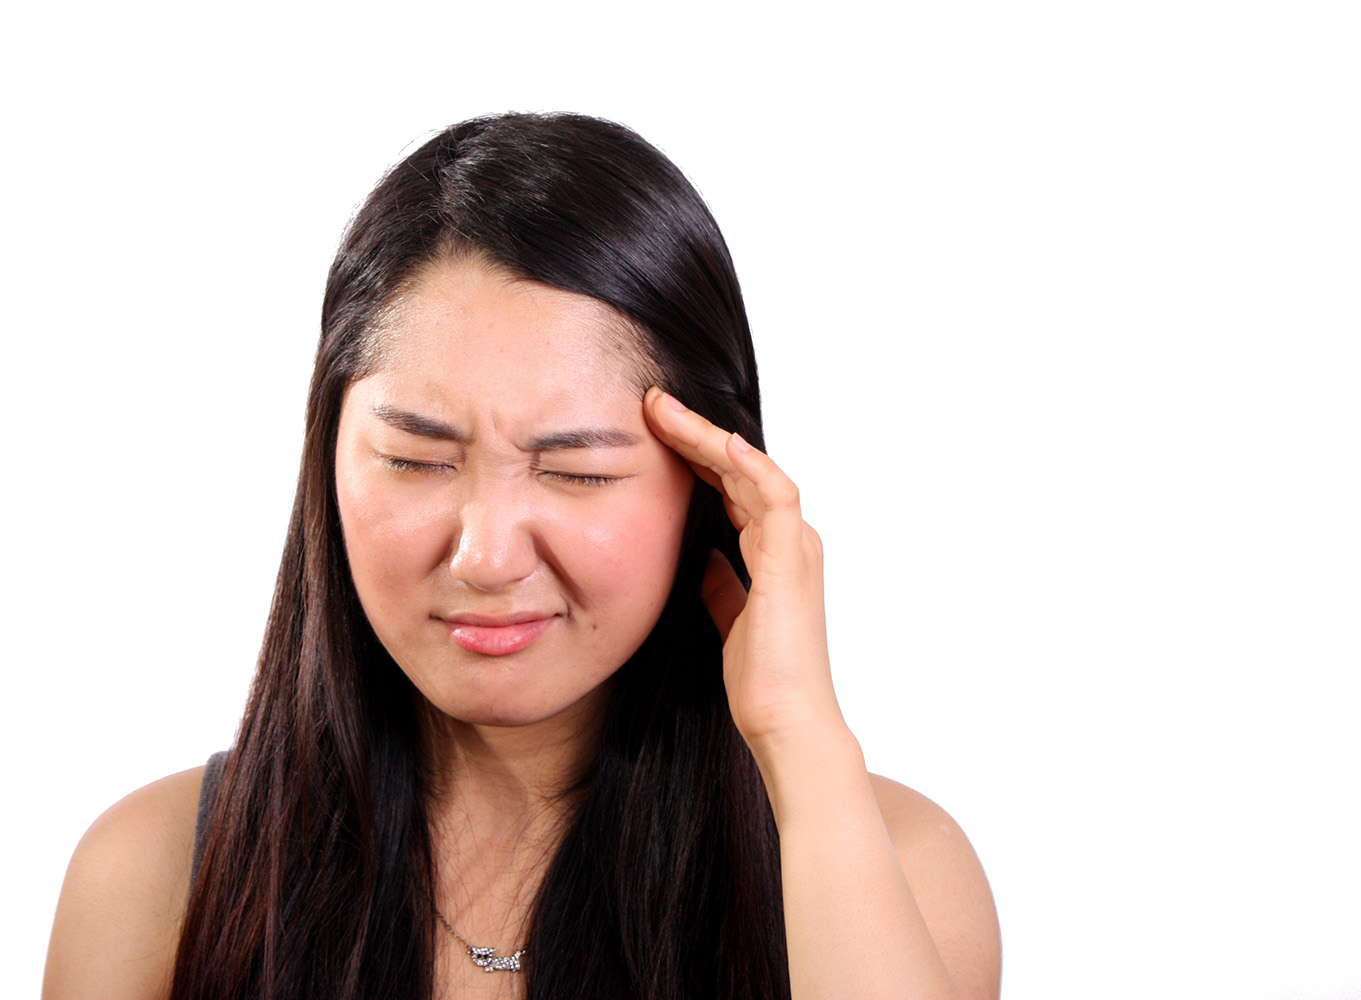 Dr. Lipoff: How to Treat Headaches without Drugs